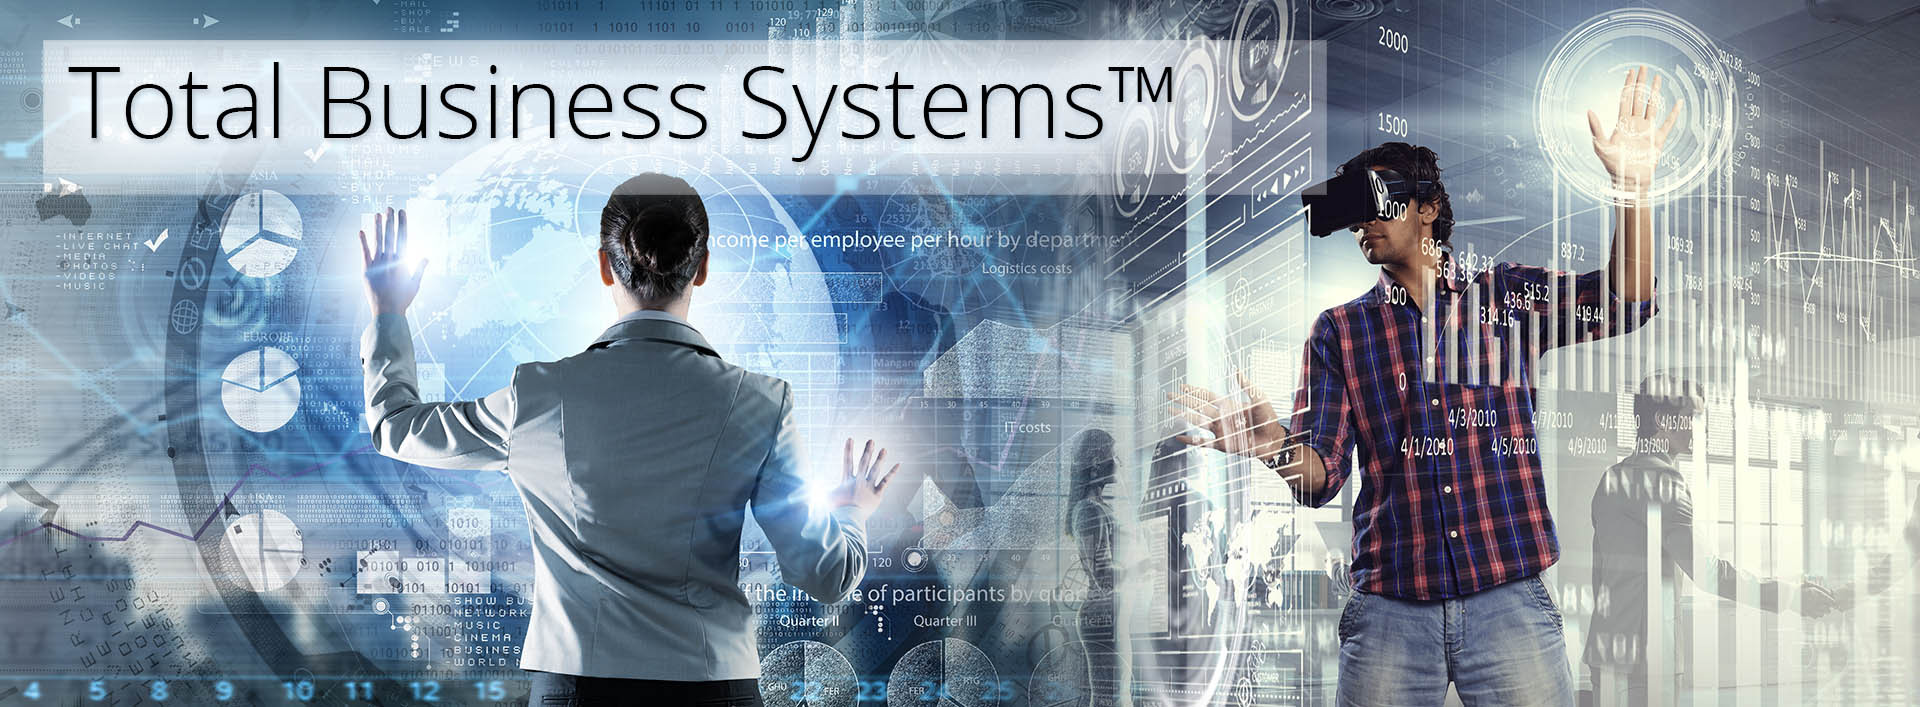 the total business systems